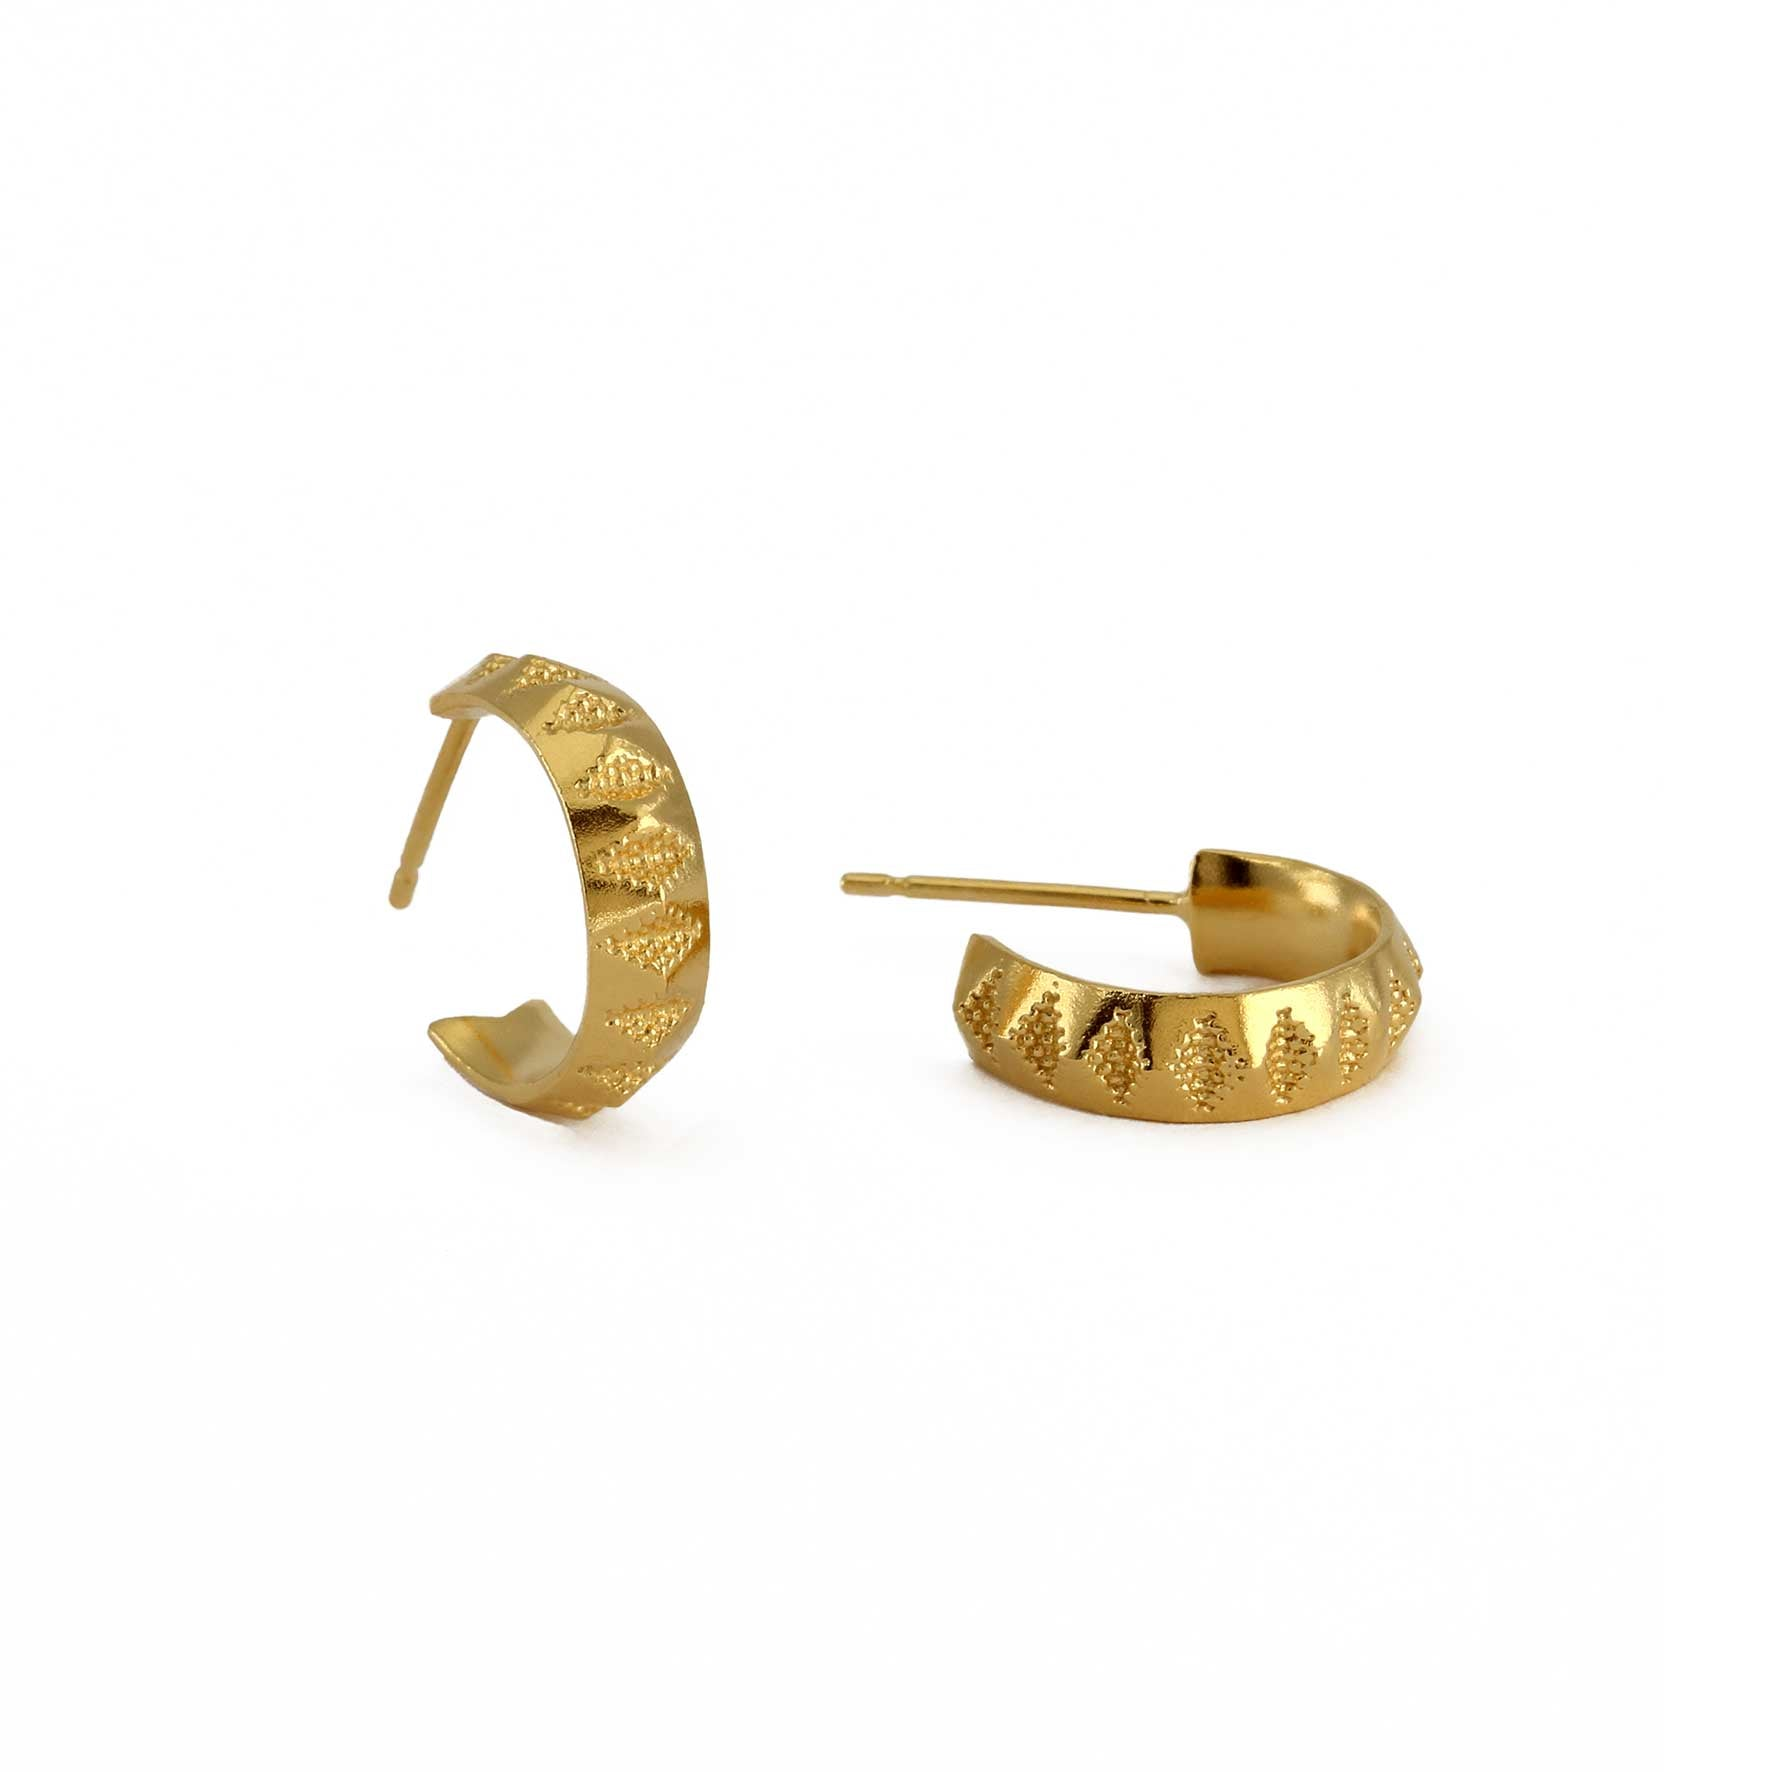 Diamond imprint pattern on yellow gold hoop earrings